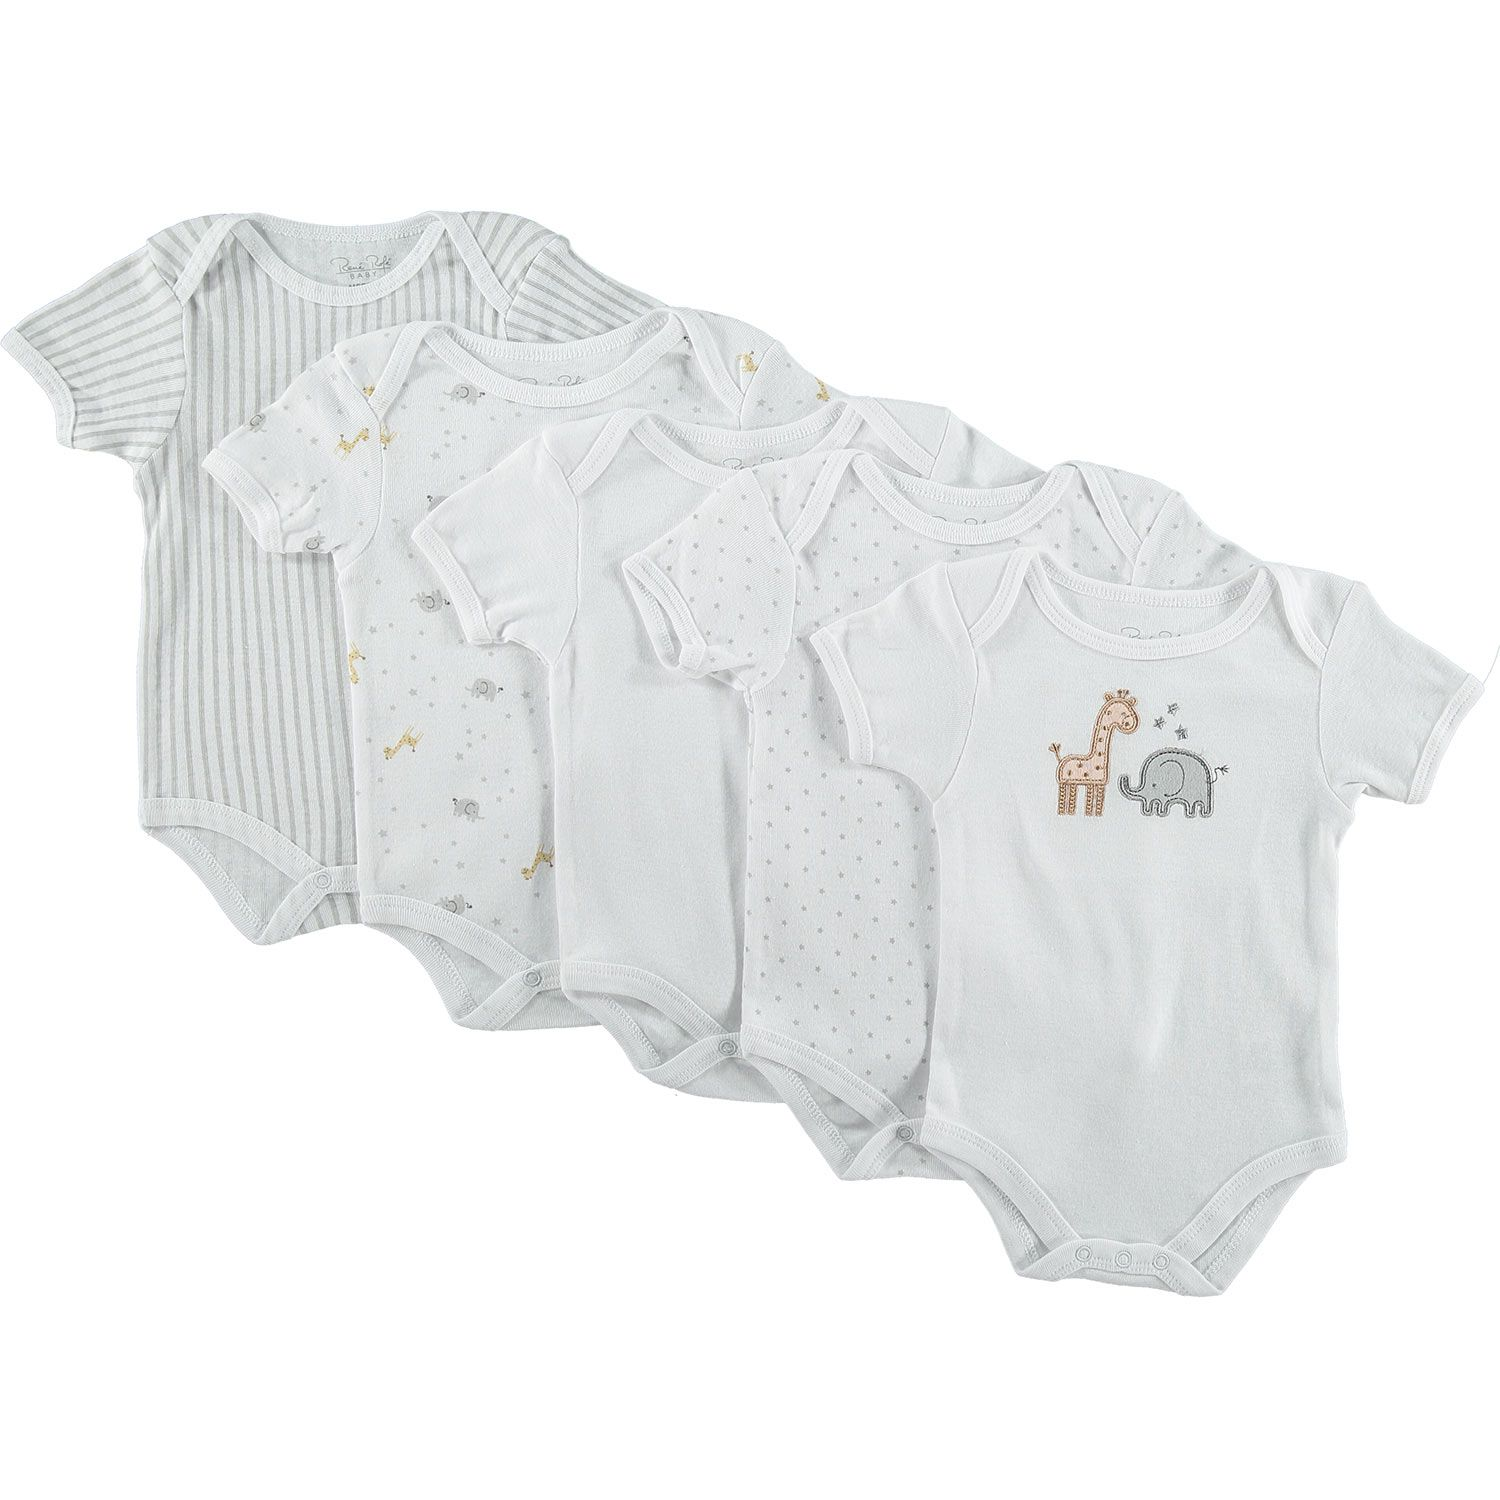 "7 99 ""Rene Rofe"" Five Pack Baby Grows TK Maxx"